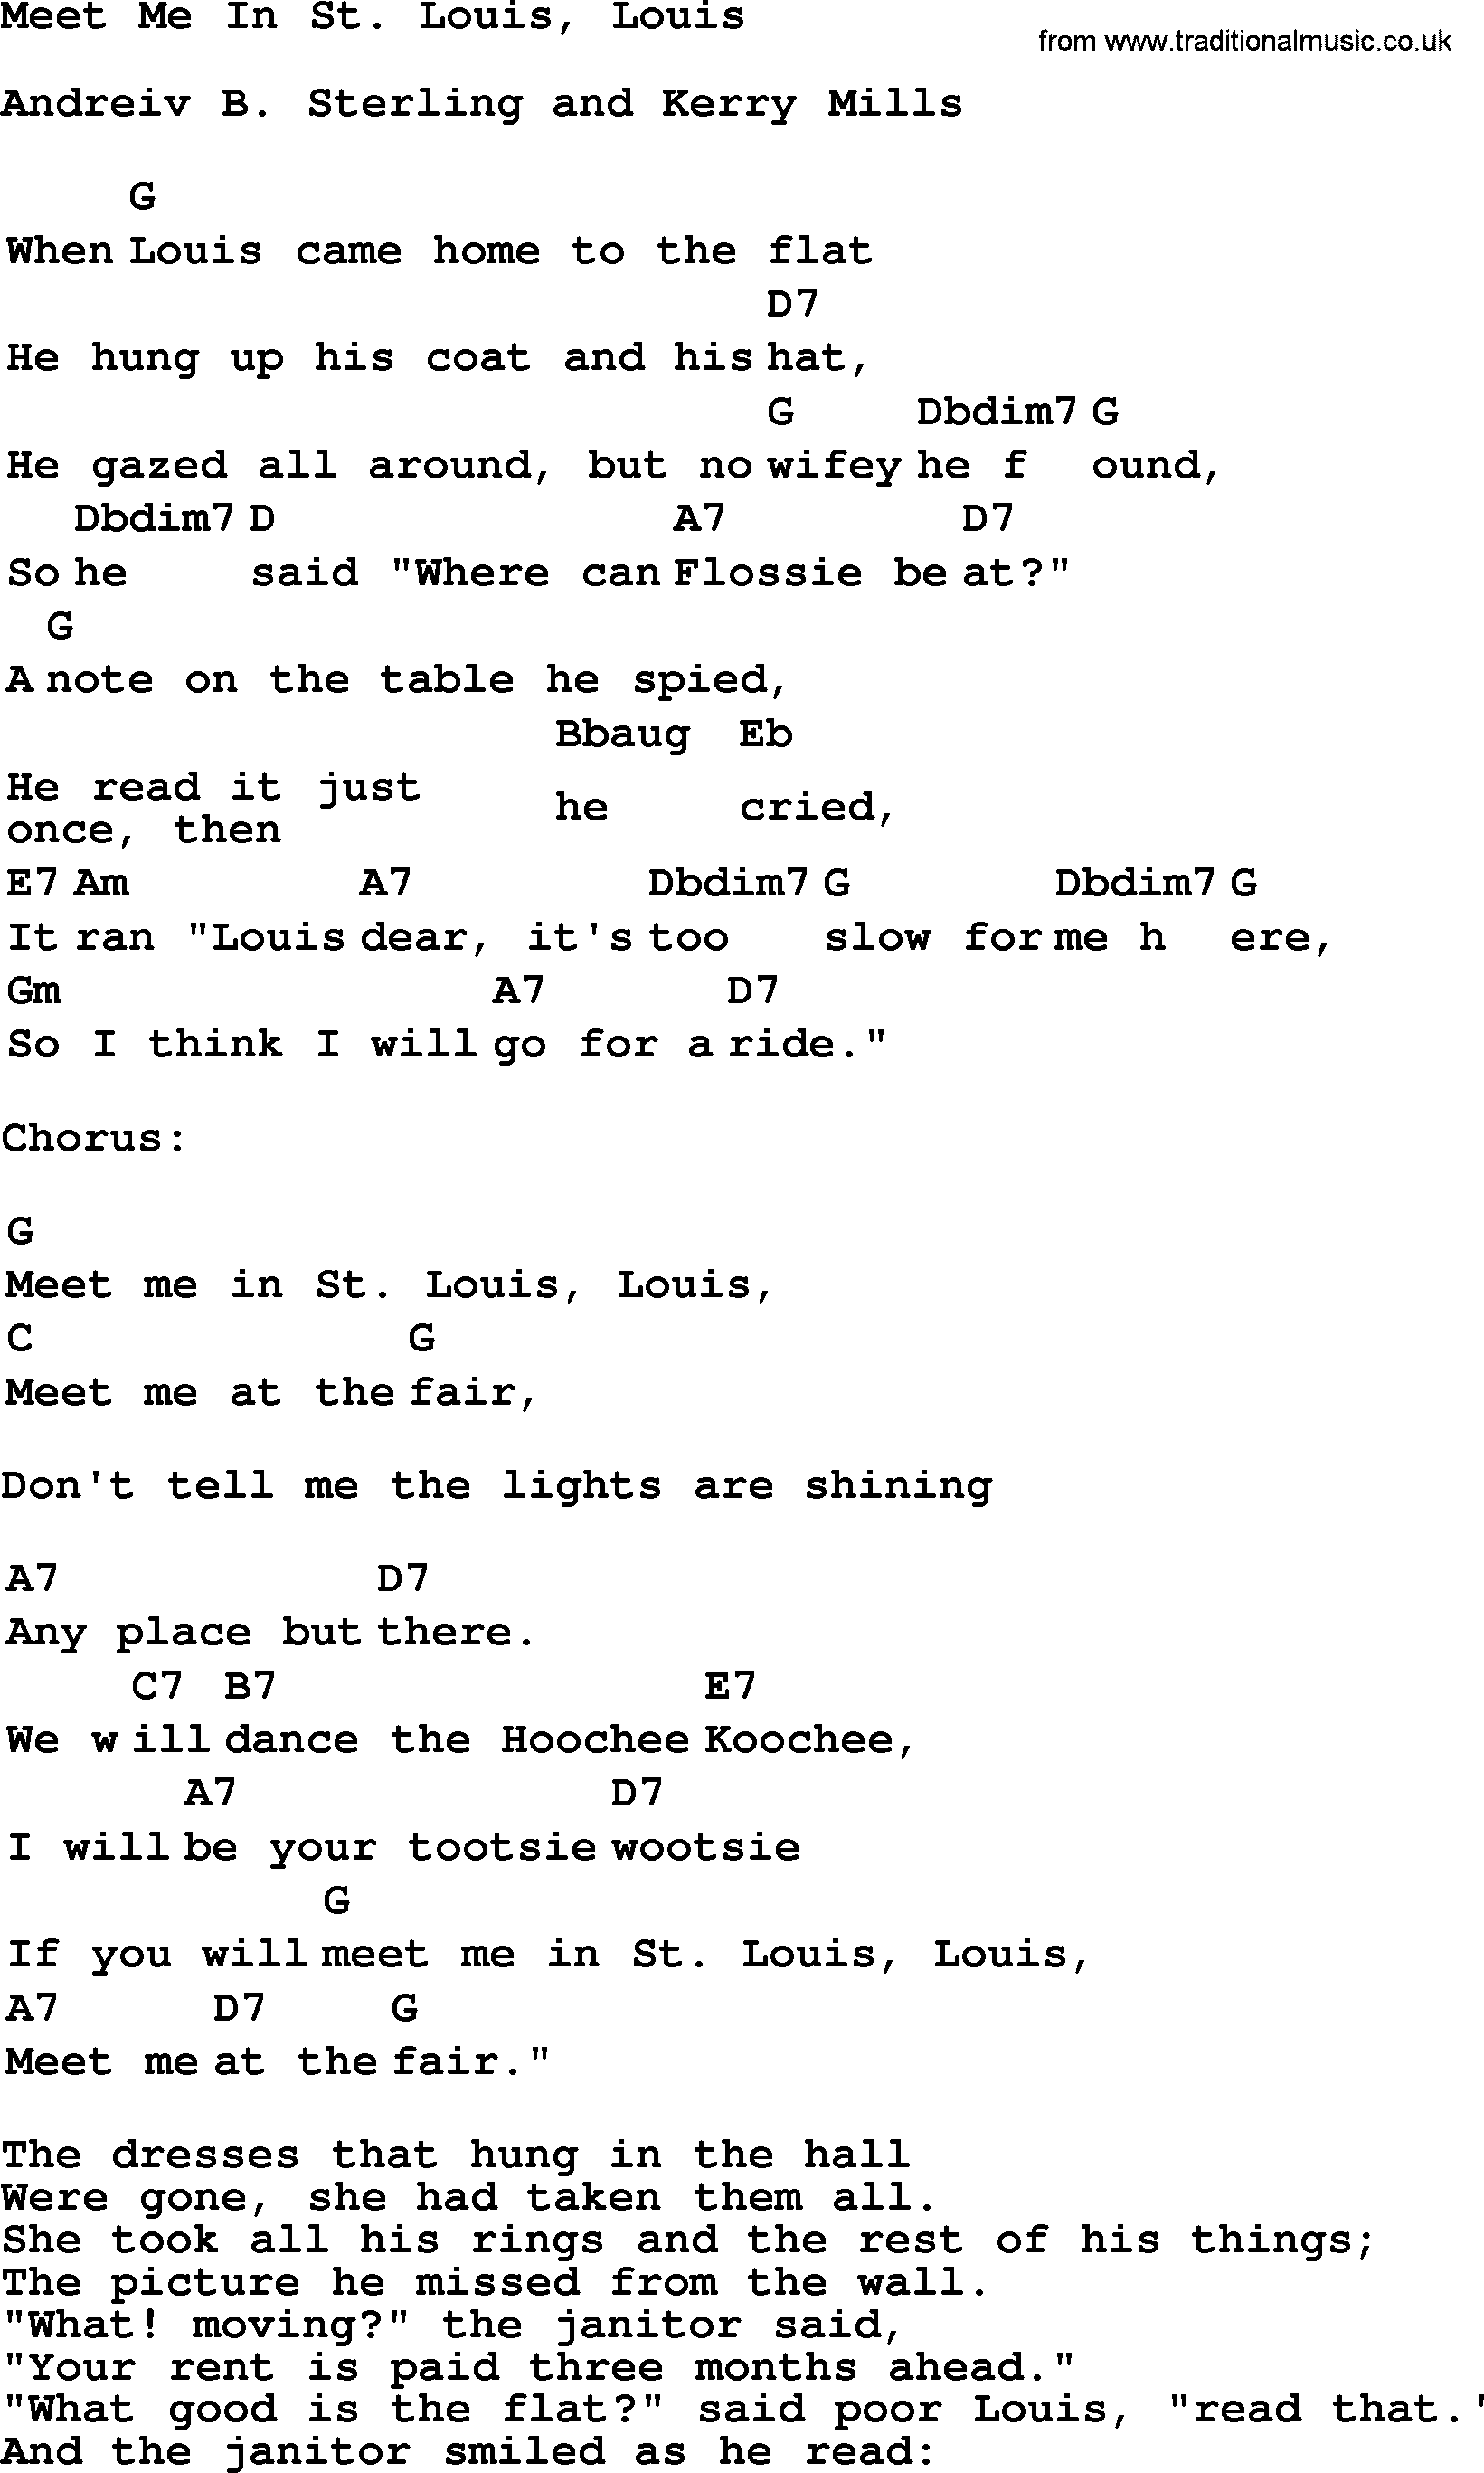 Meet me in st louis songs lyrics